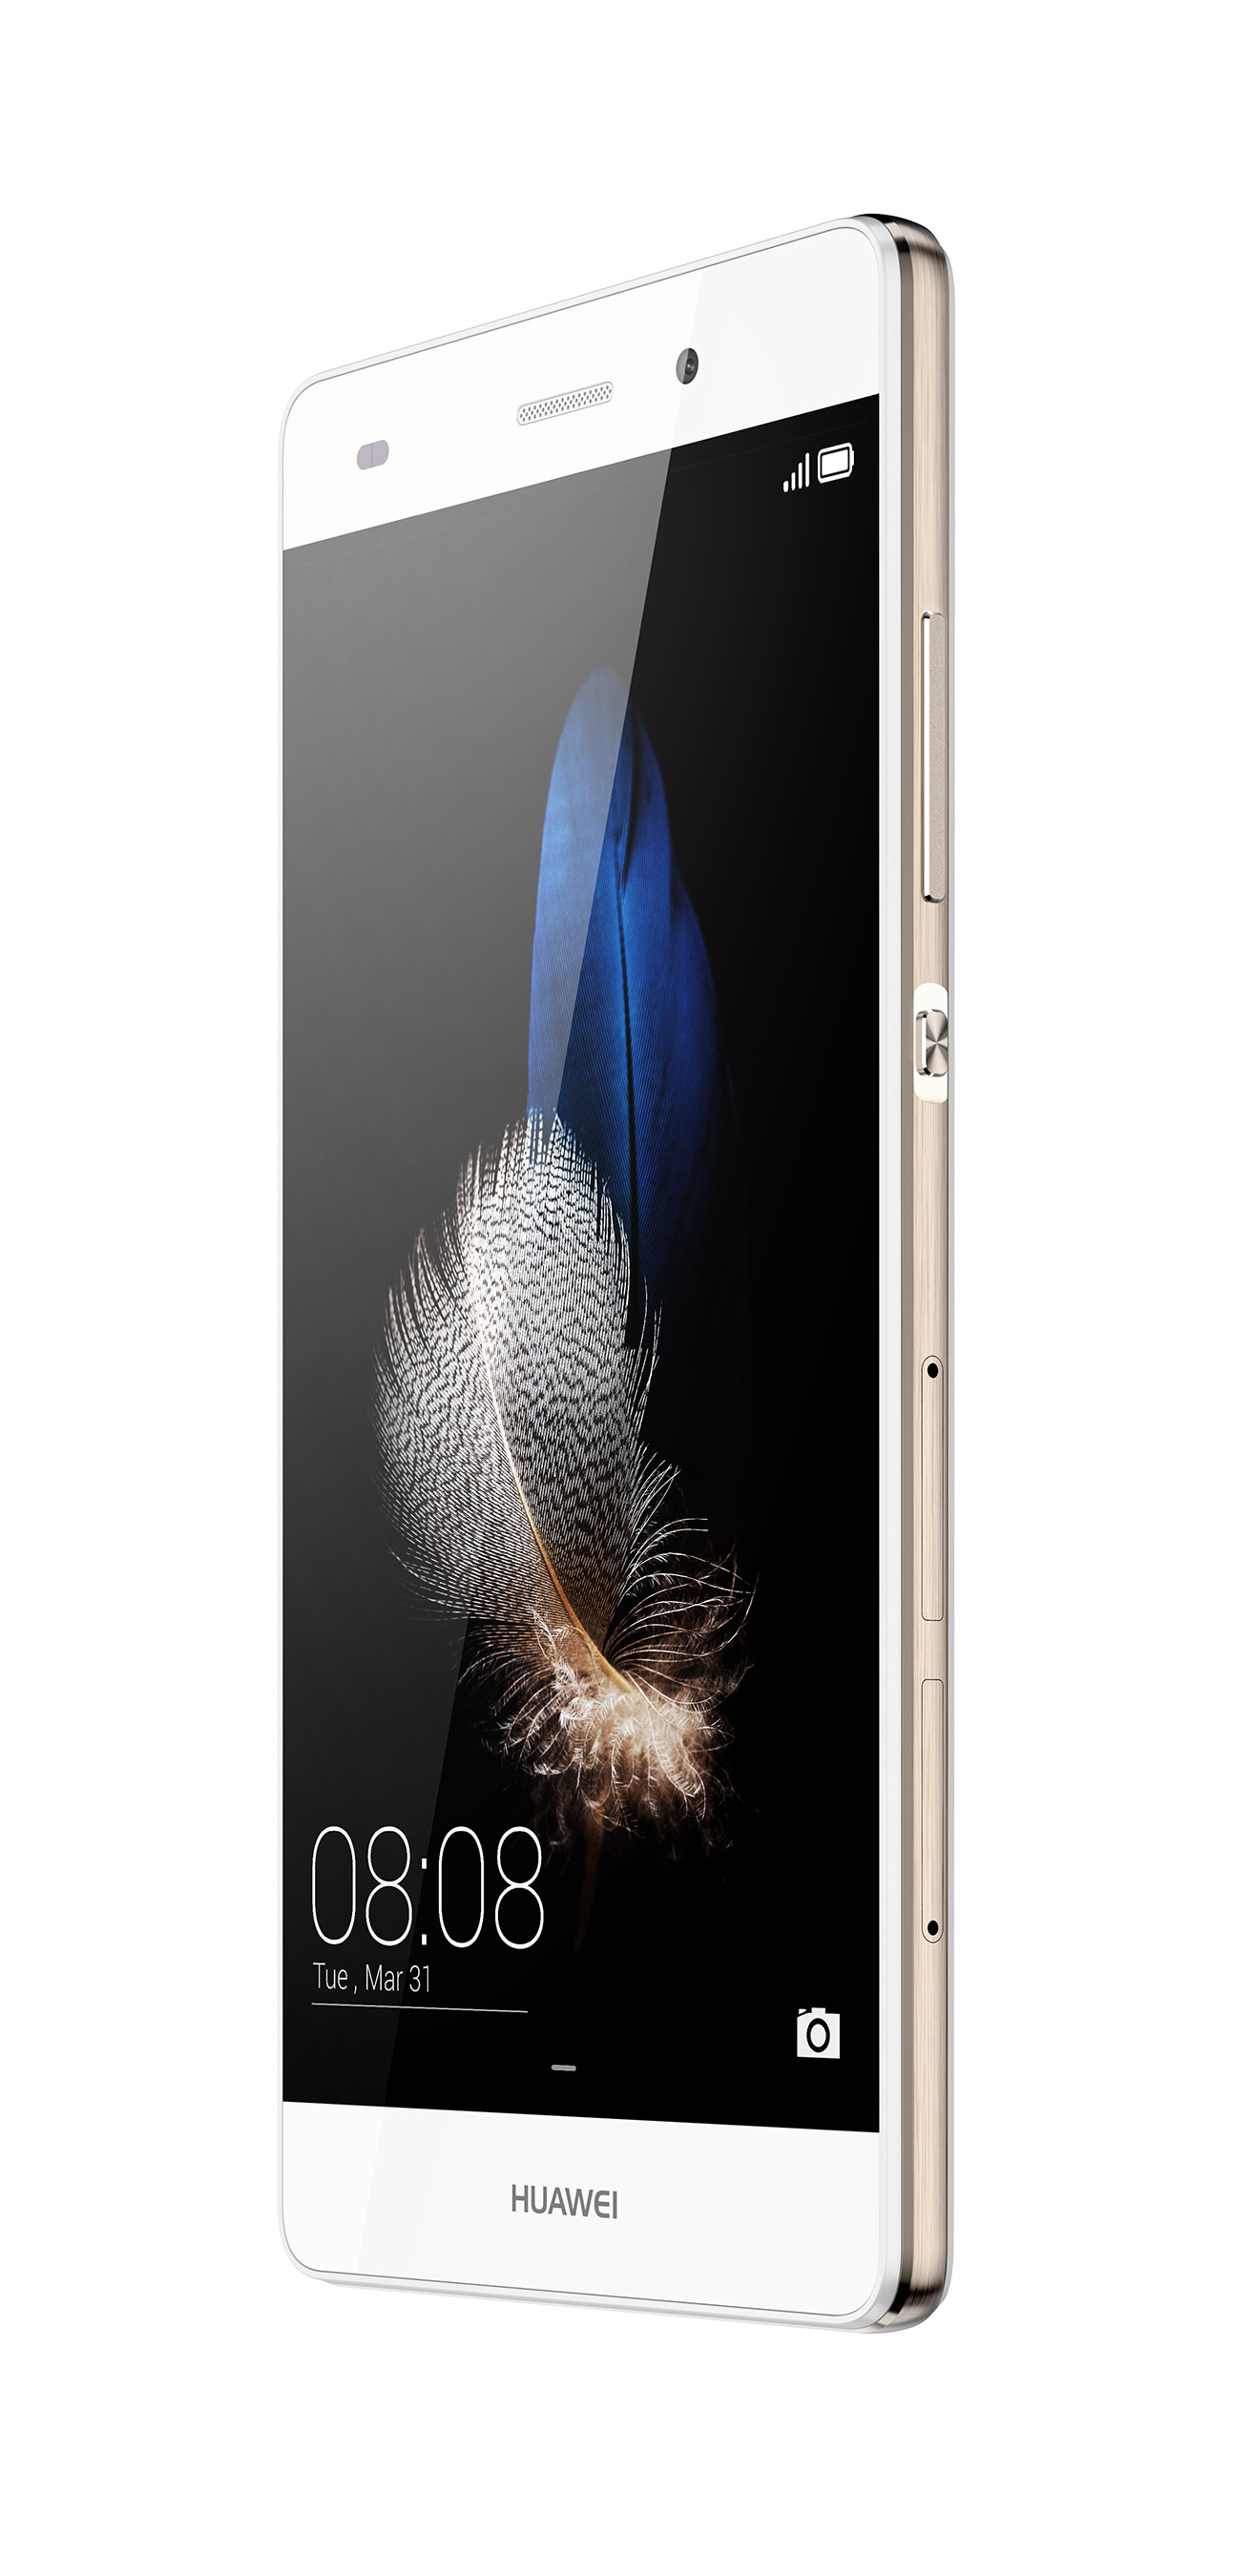 Huawei Brings Great Design within Reach with New Unlocked P8 lite Smartphone